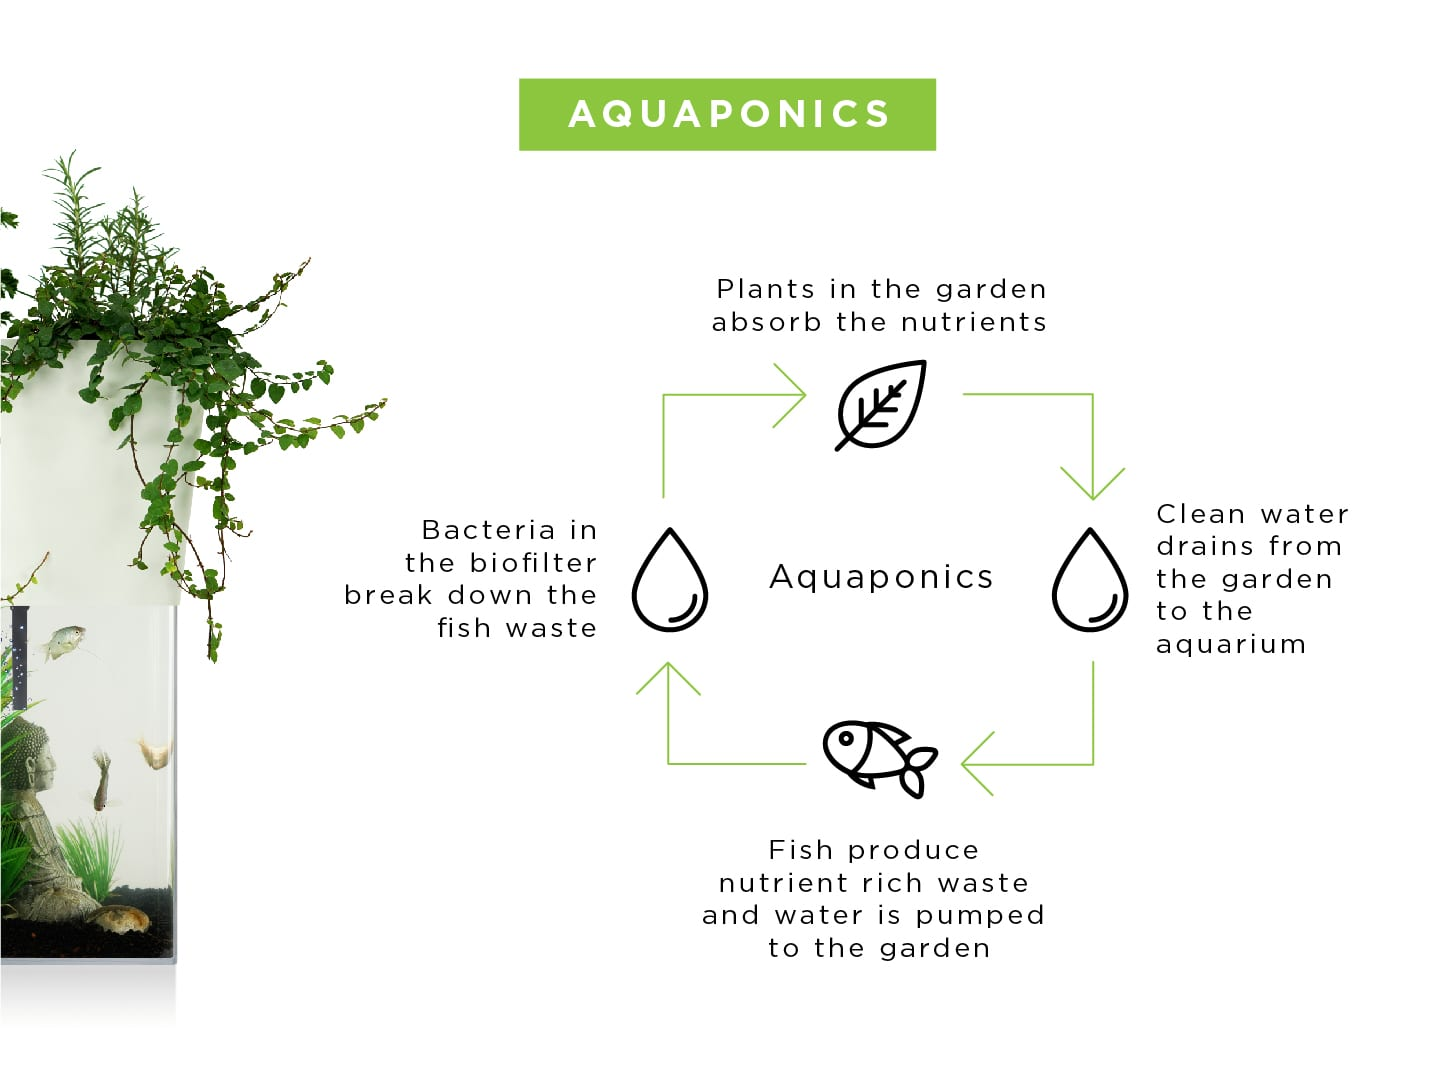 Just Learn Aquaponic cycle